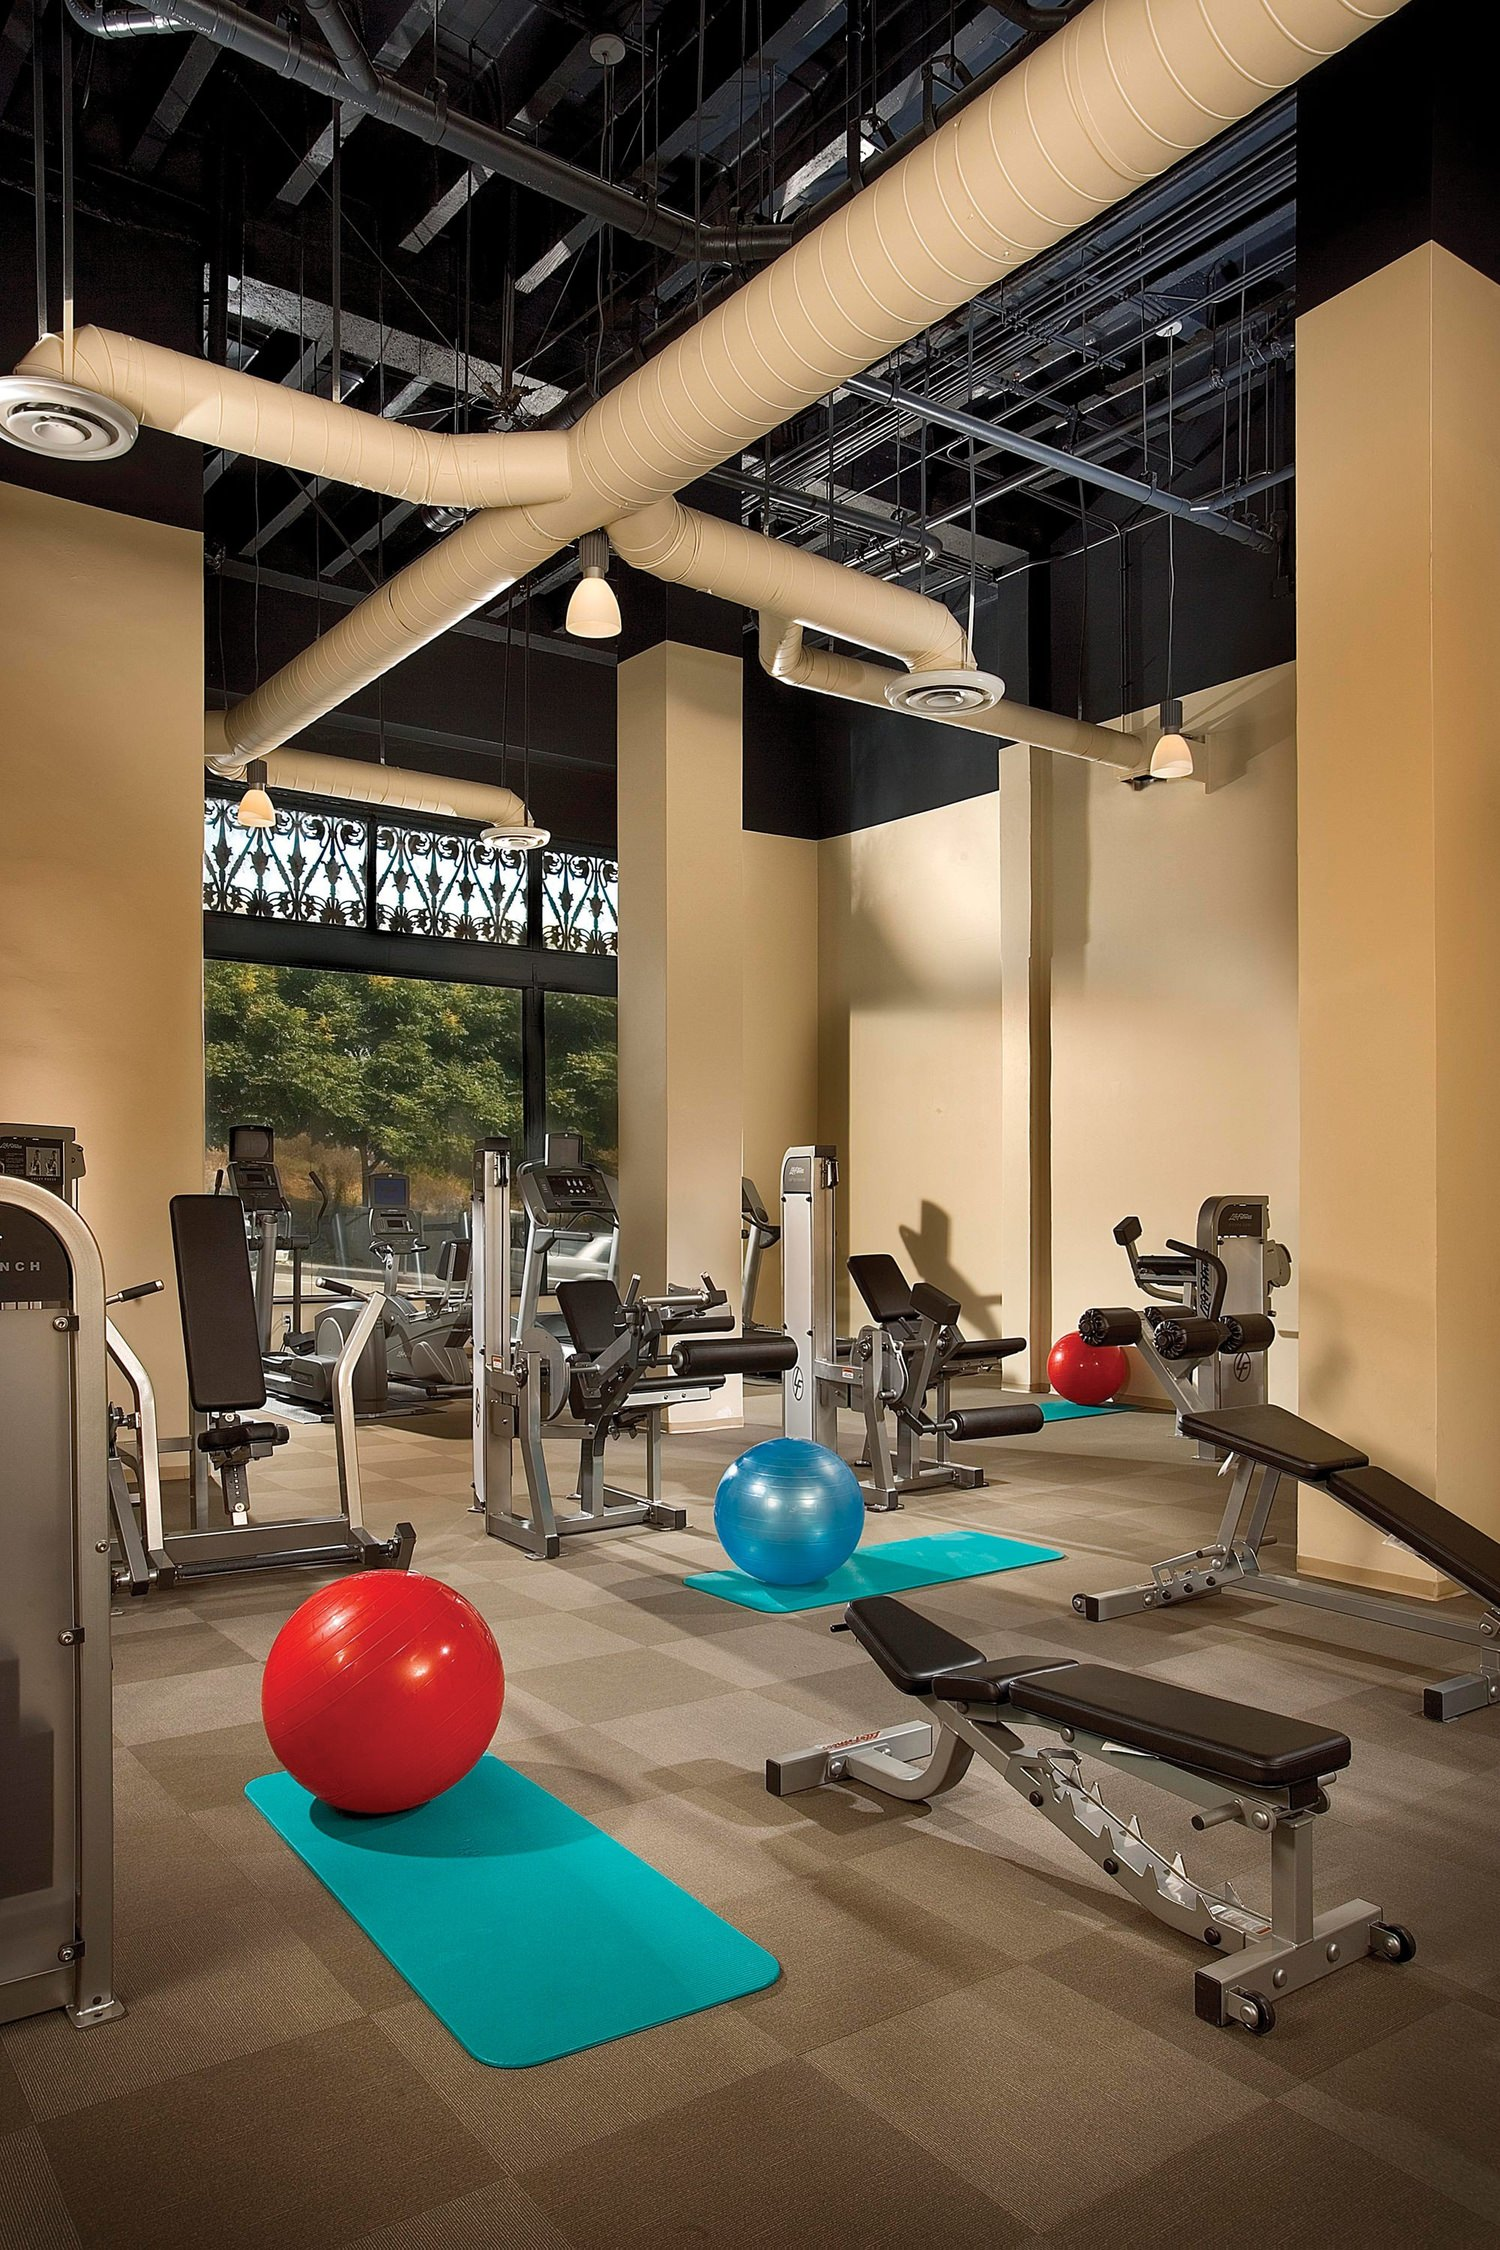 A gym that is full of exercise machines and equipment along the area of the room.